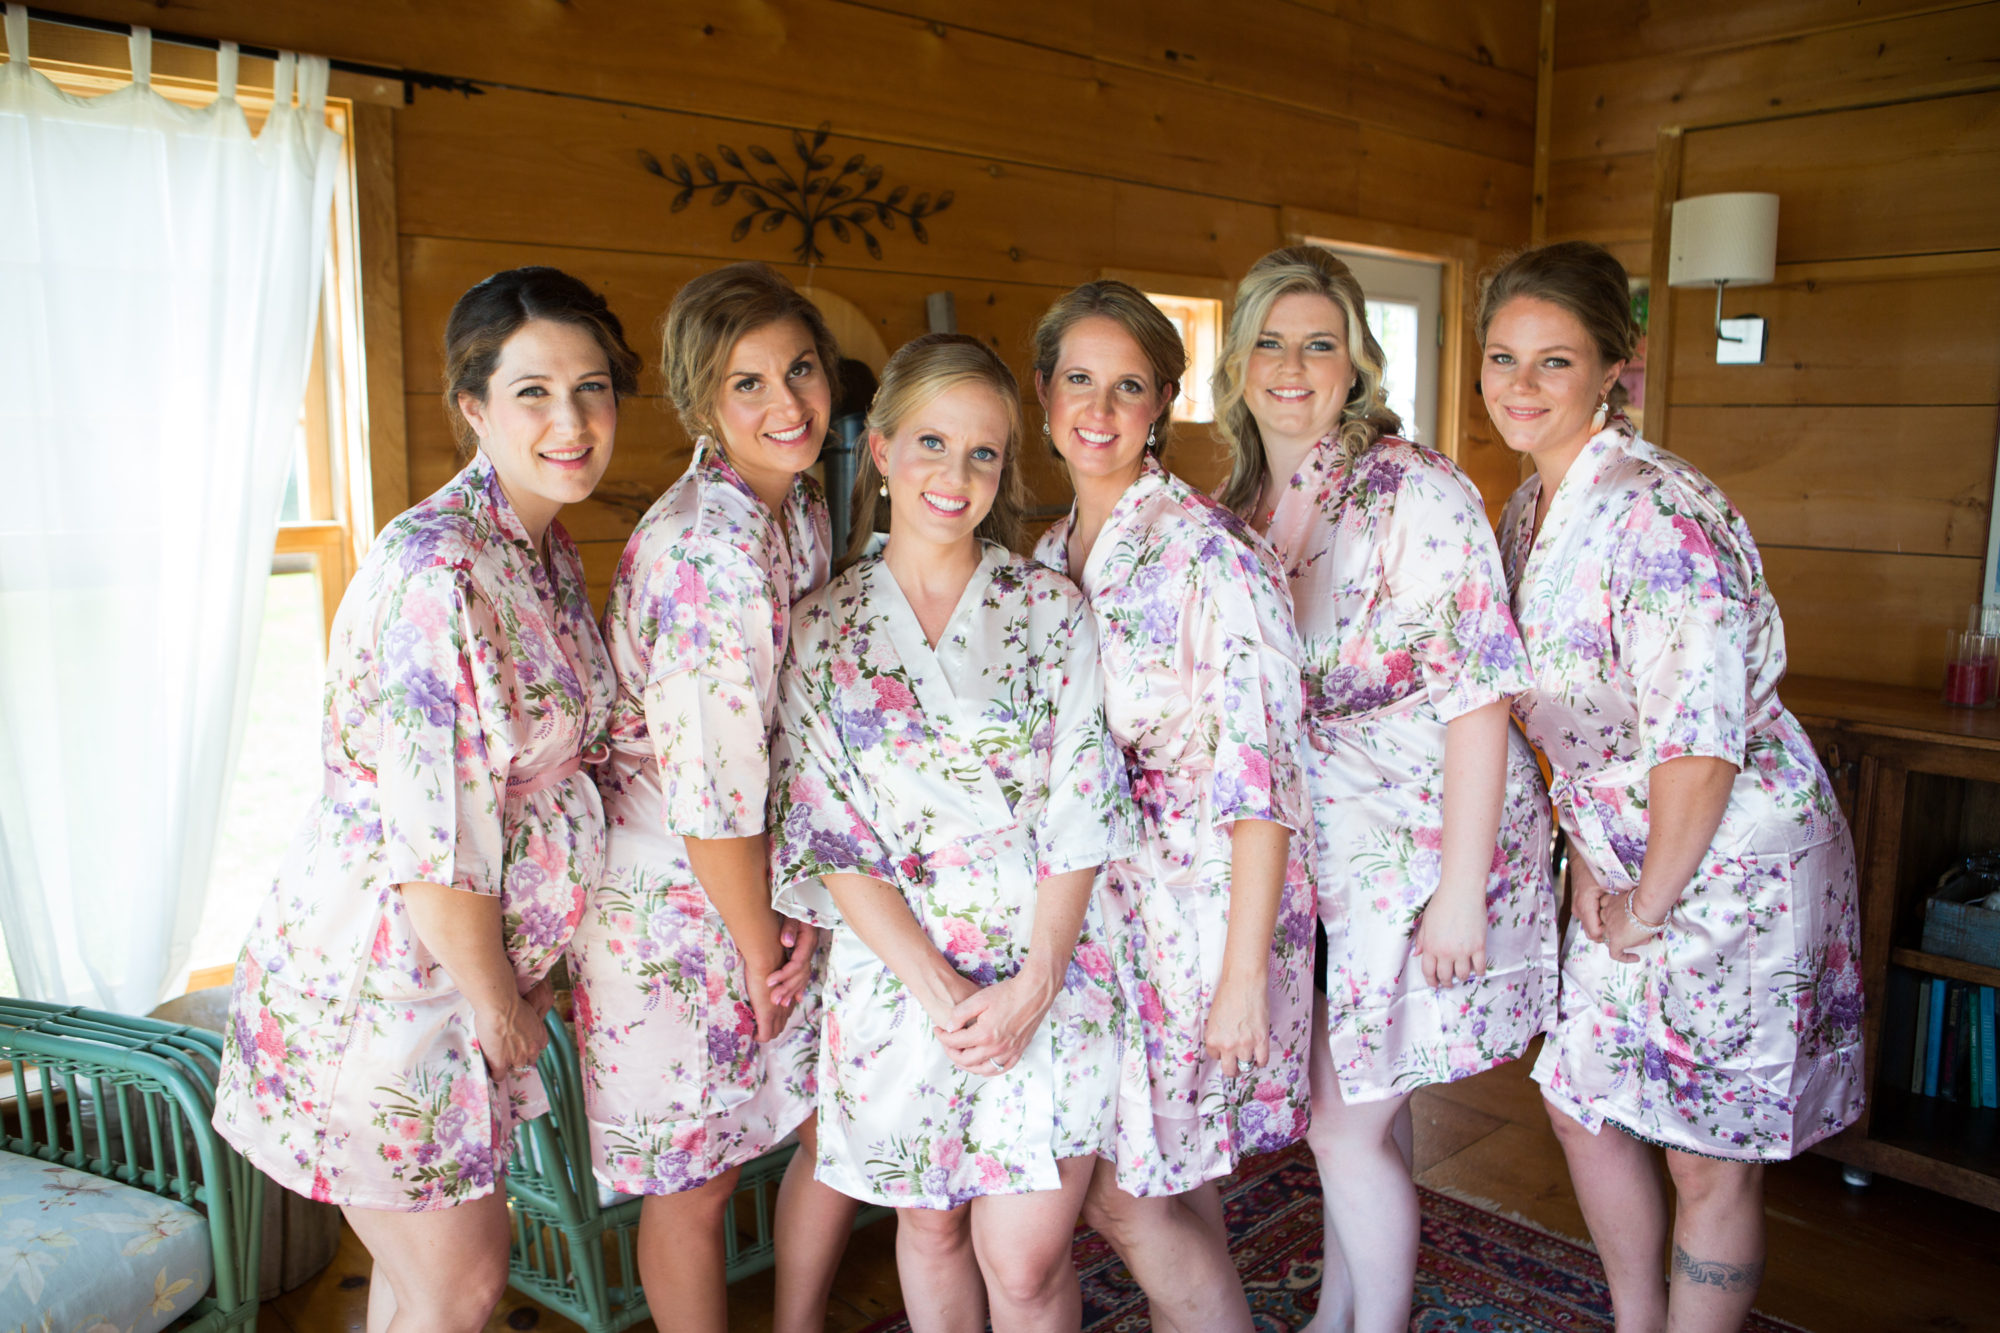 Bridemaids Bride South Pond Farms Zsuzsi Pal Photography Wedding